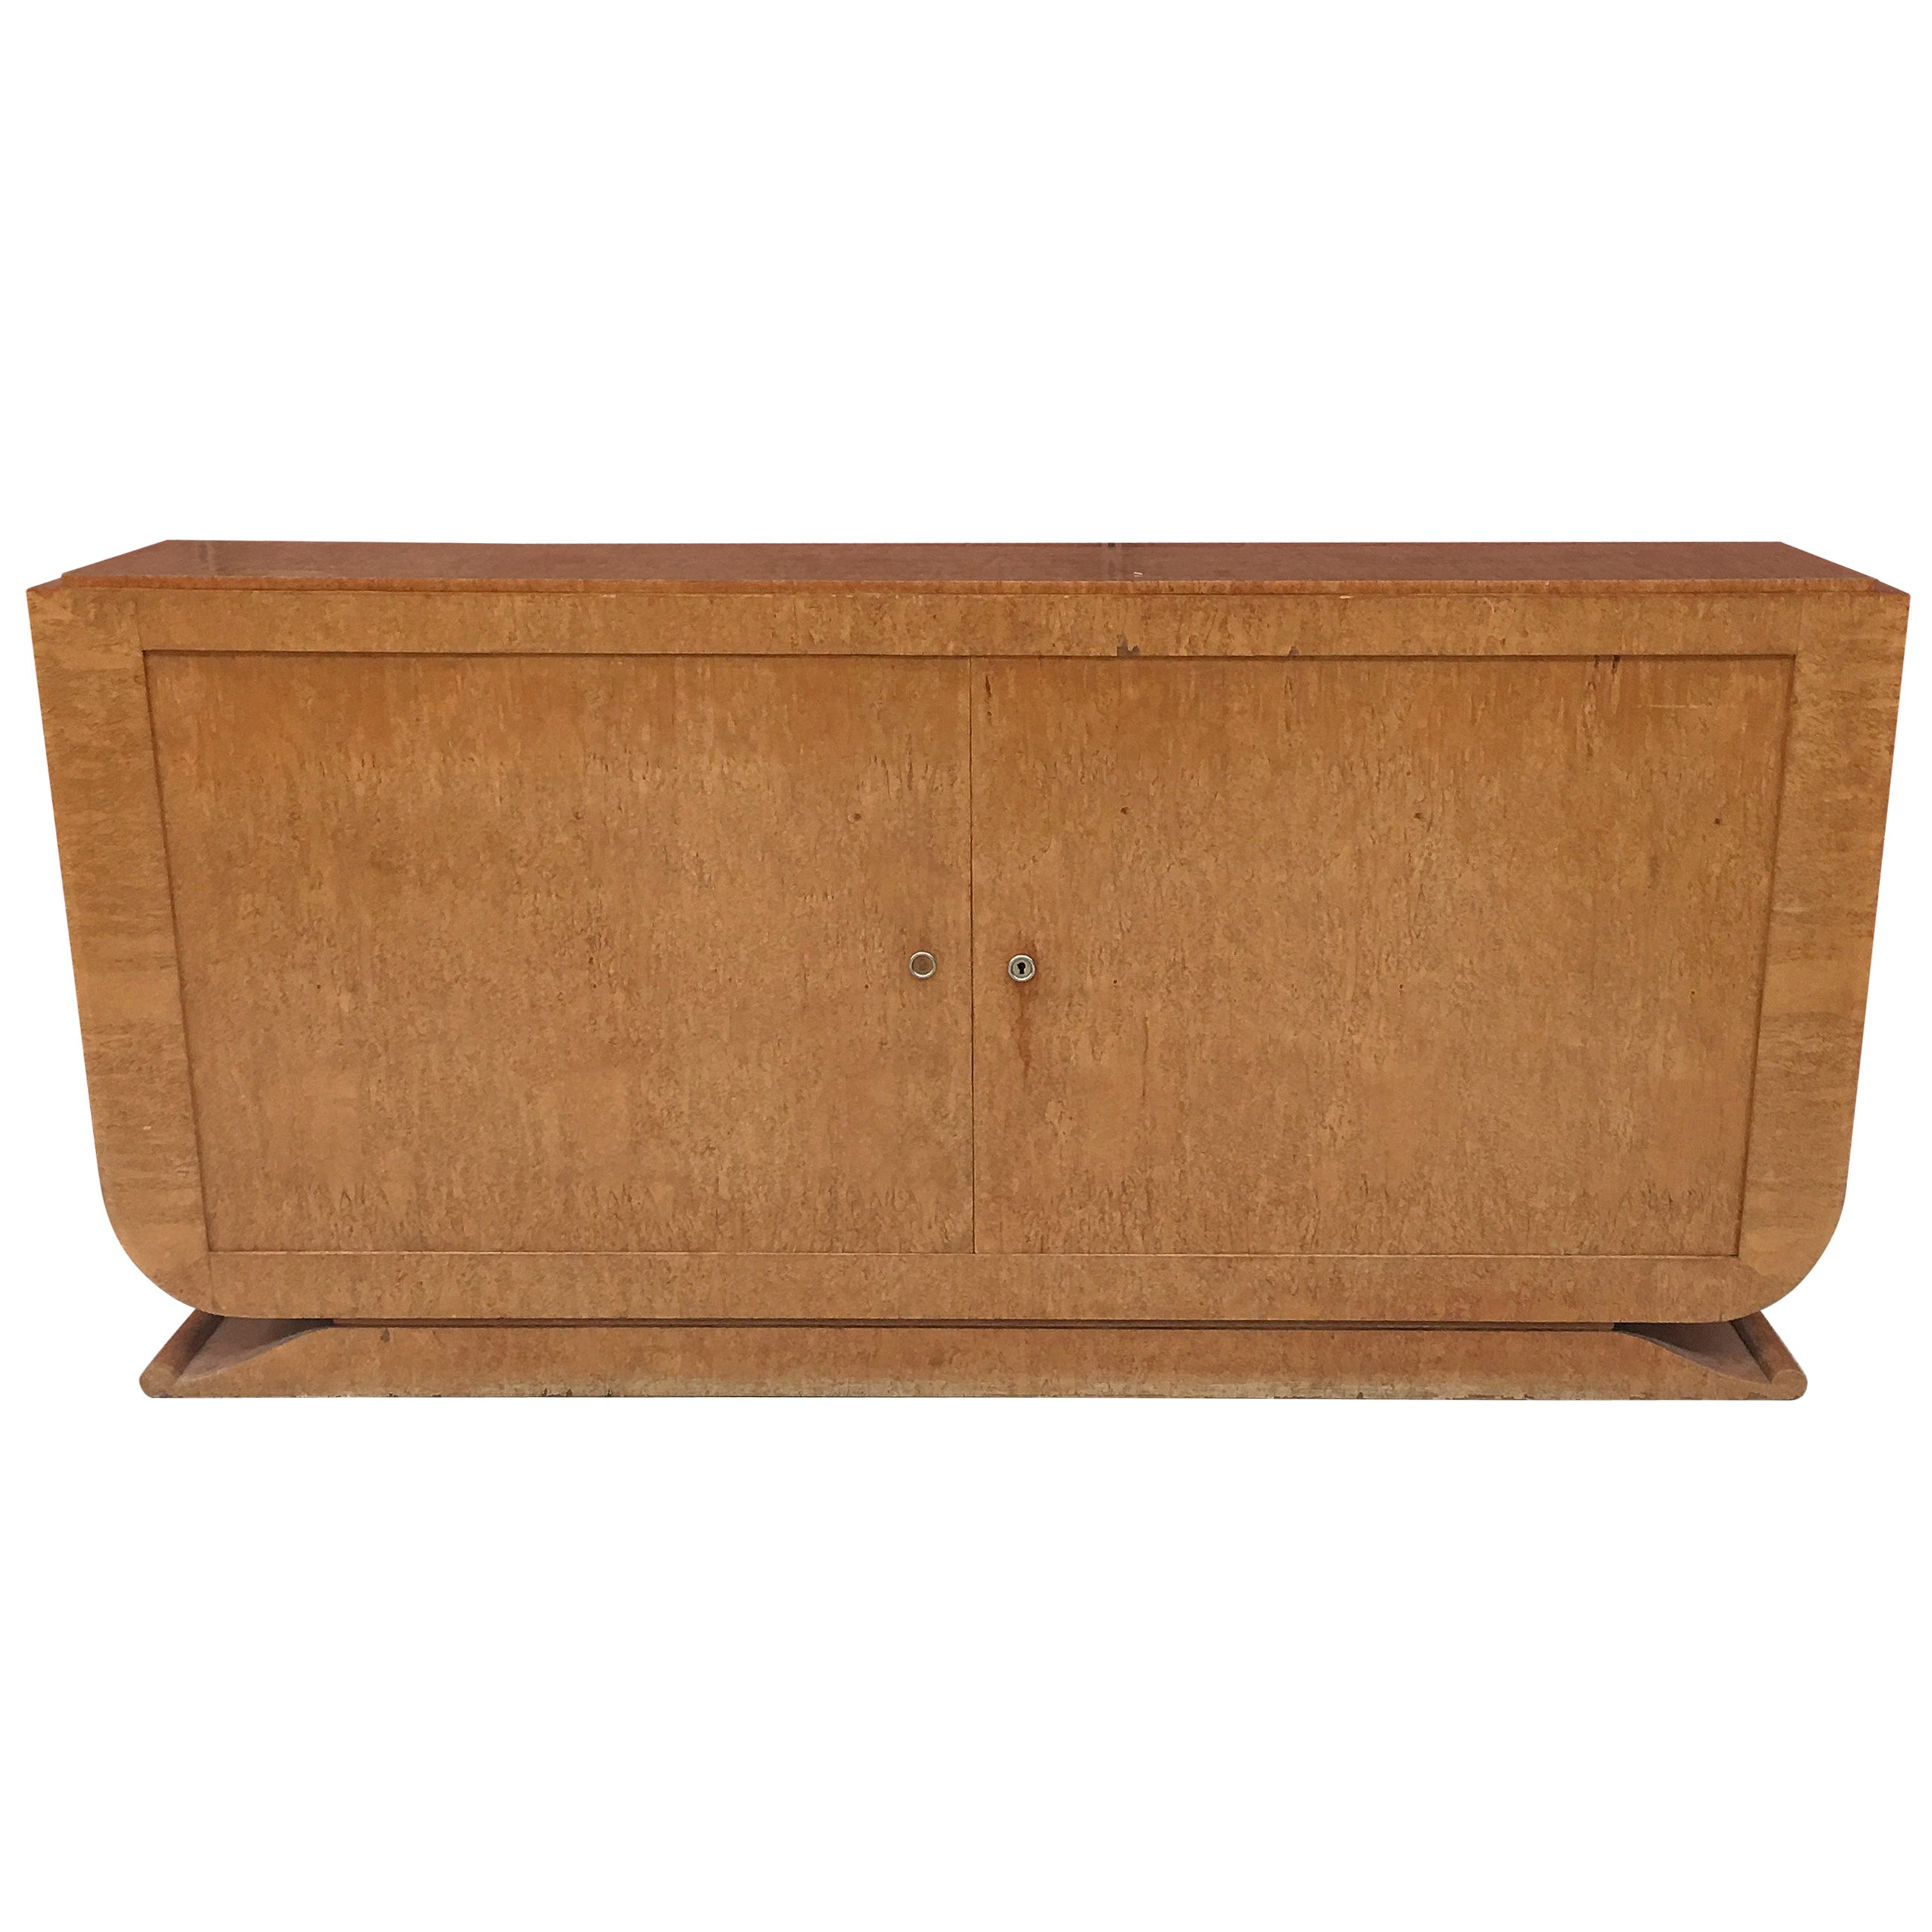 Art Deco Sideboard in Birch Veneer from Norway, circa 1930-1940